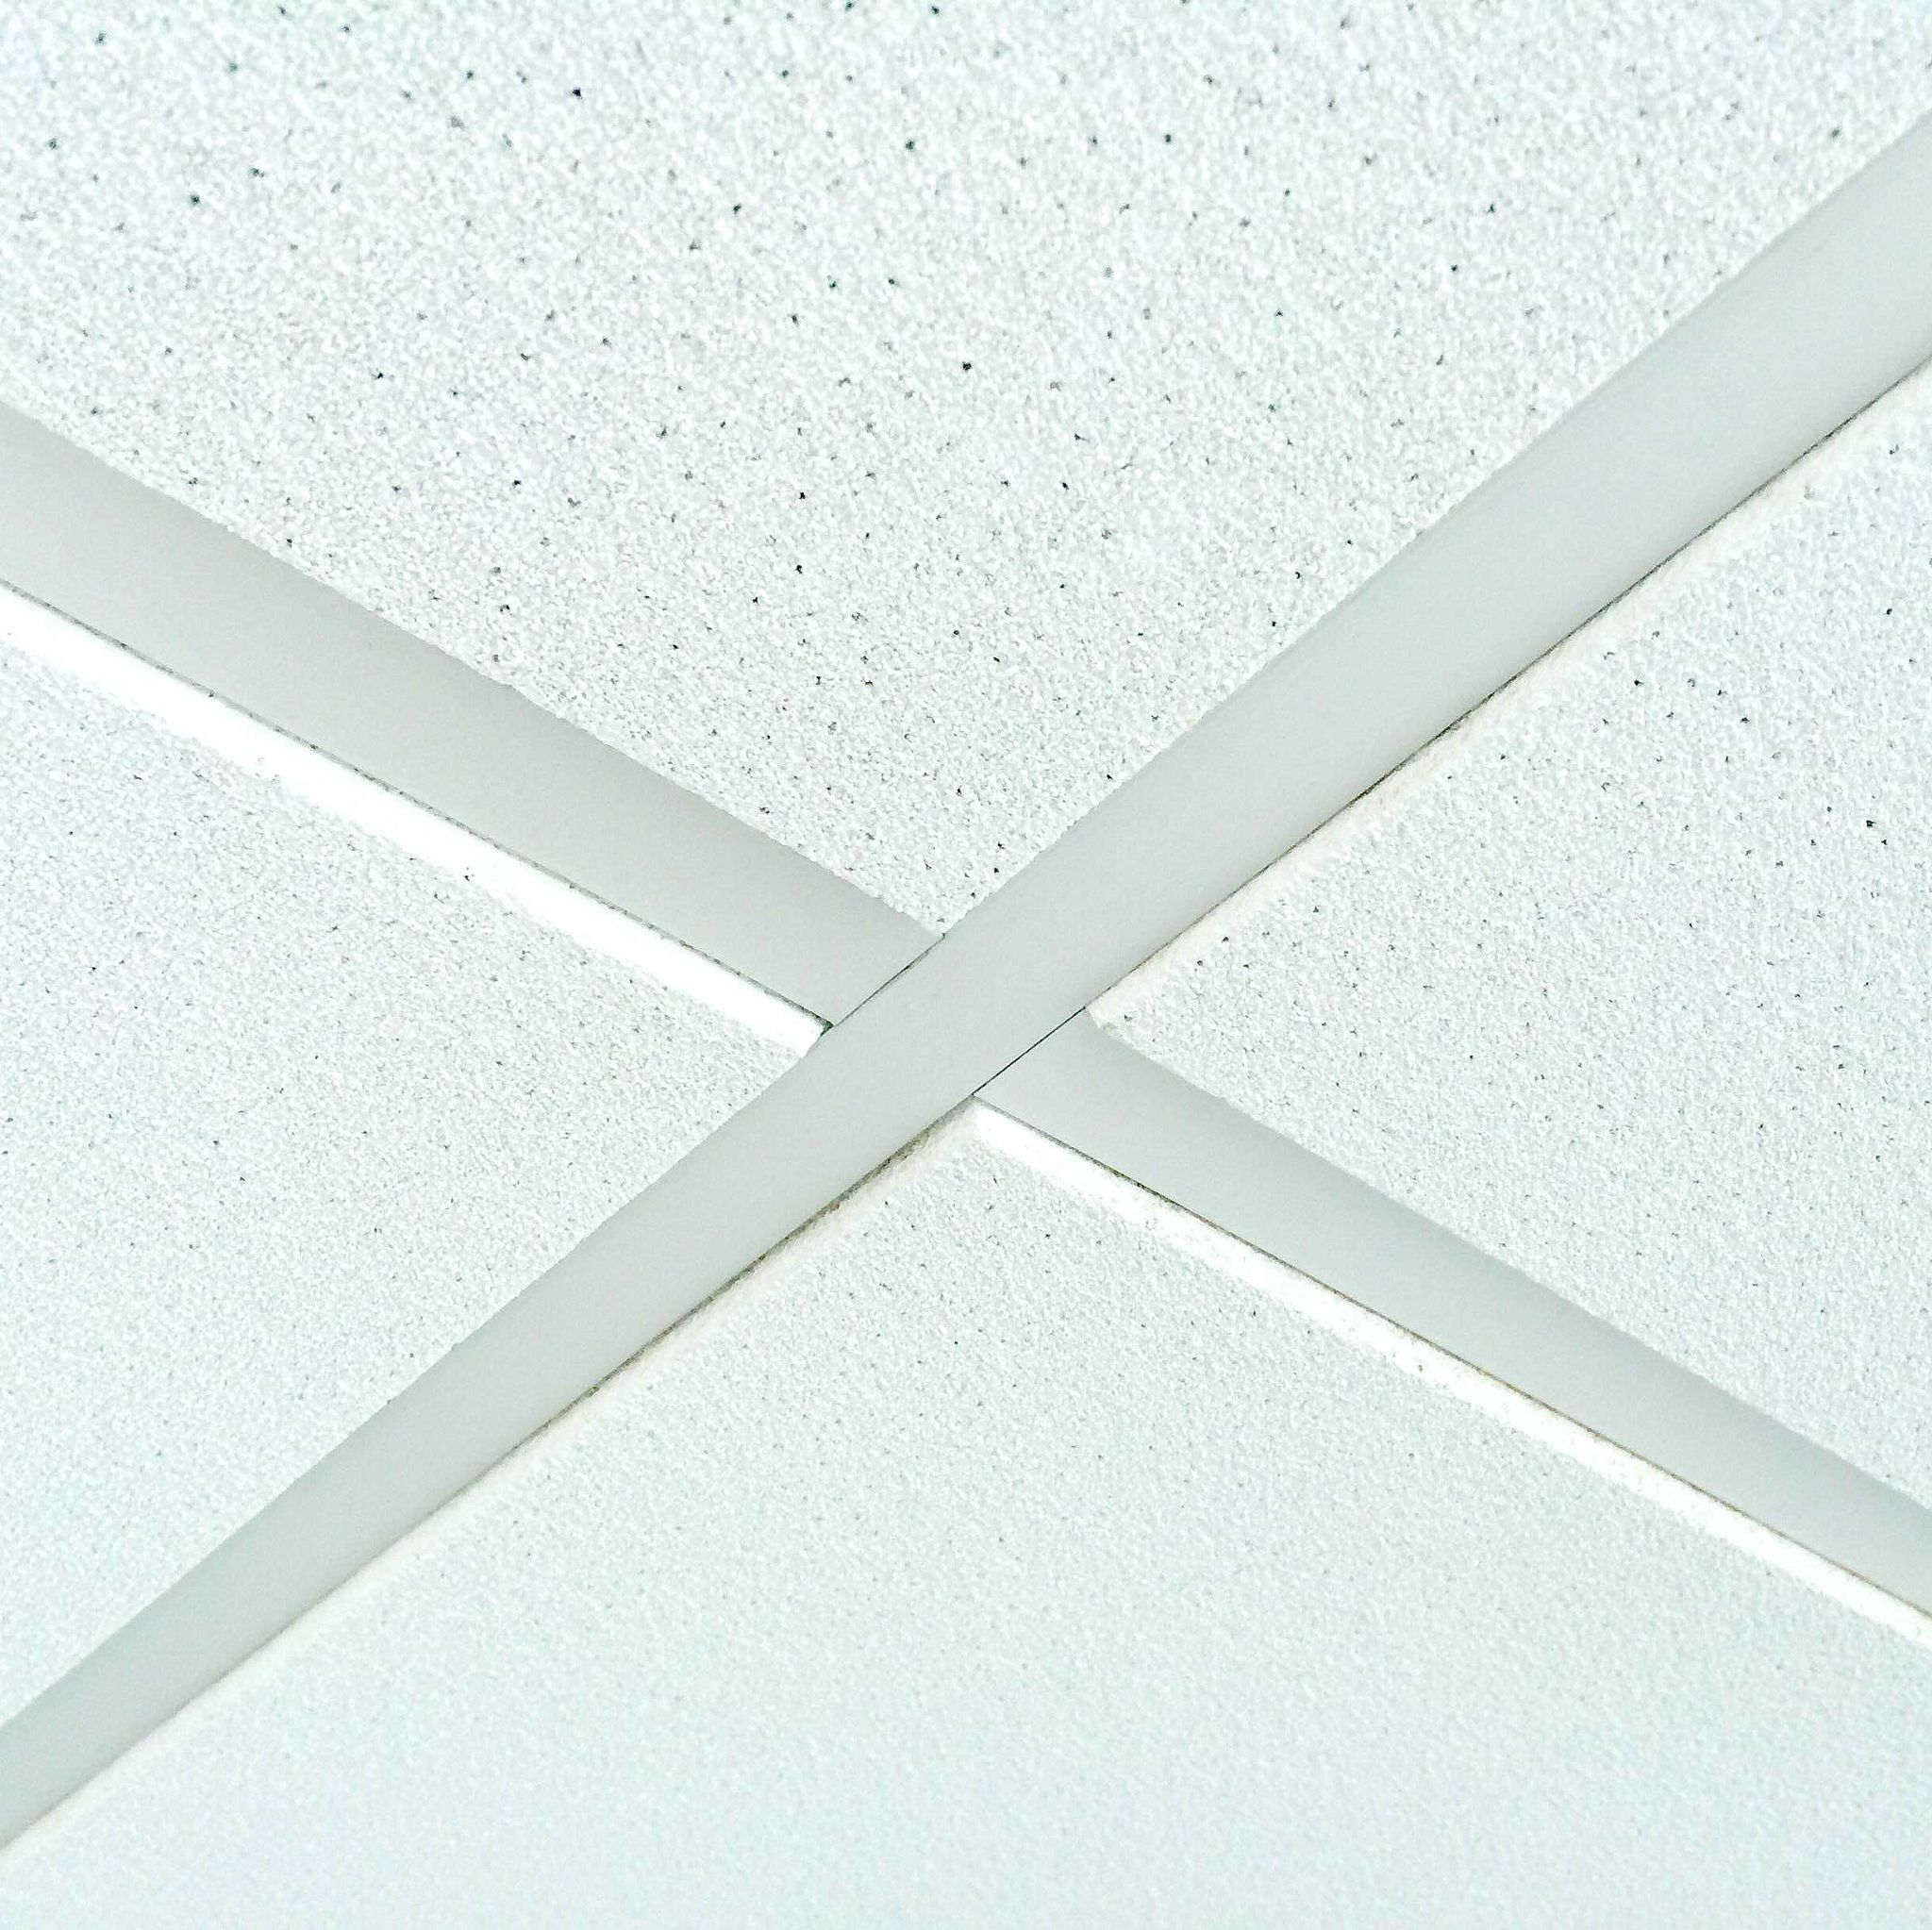 Fine fissured tegular ceiling tiles board 600 x 600mm square edge 24mm armstrong fine fissured tegular ceiling tiles board 600 x 600mm square edge 24mm dailygadgetfo Gallery